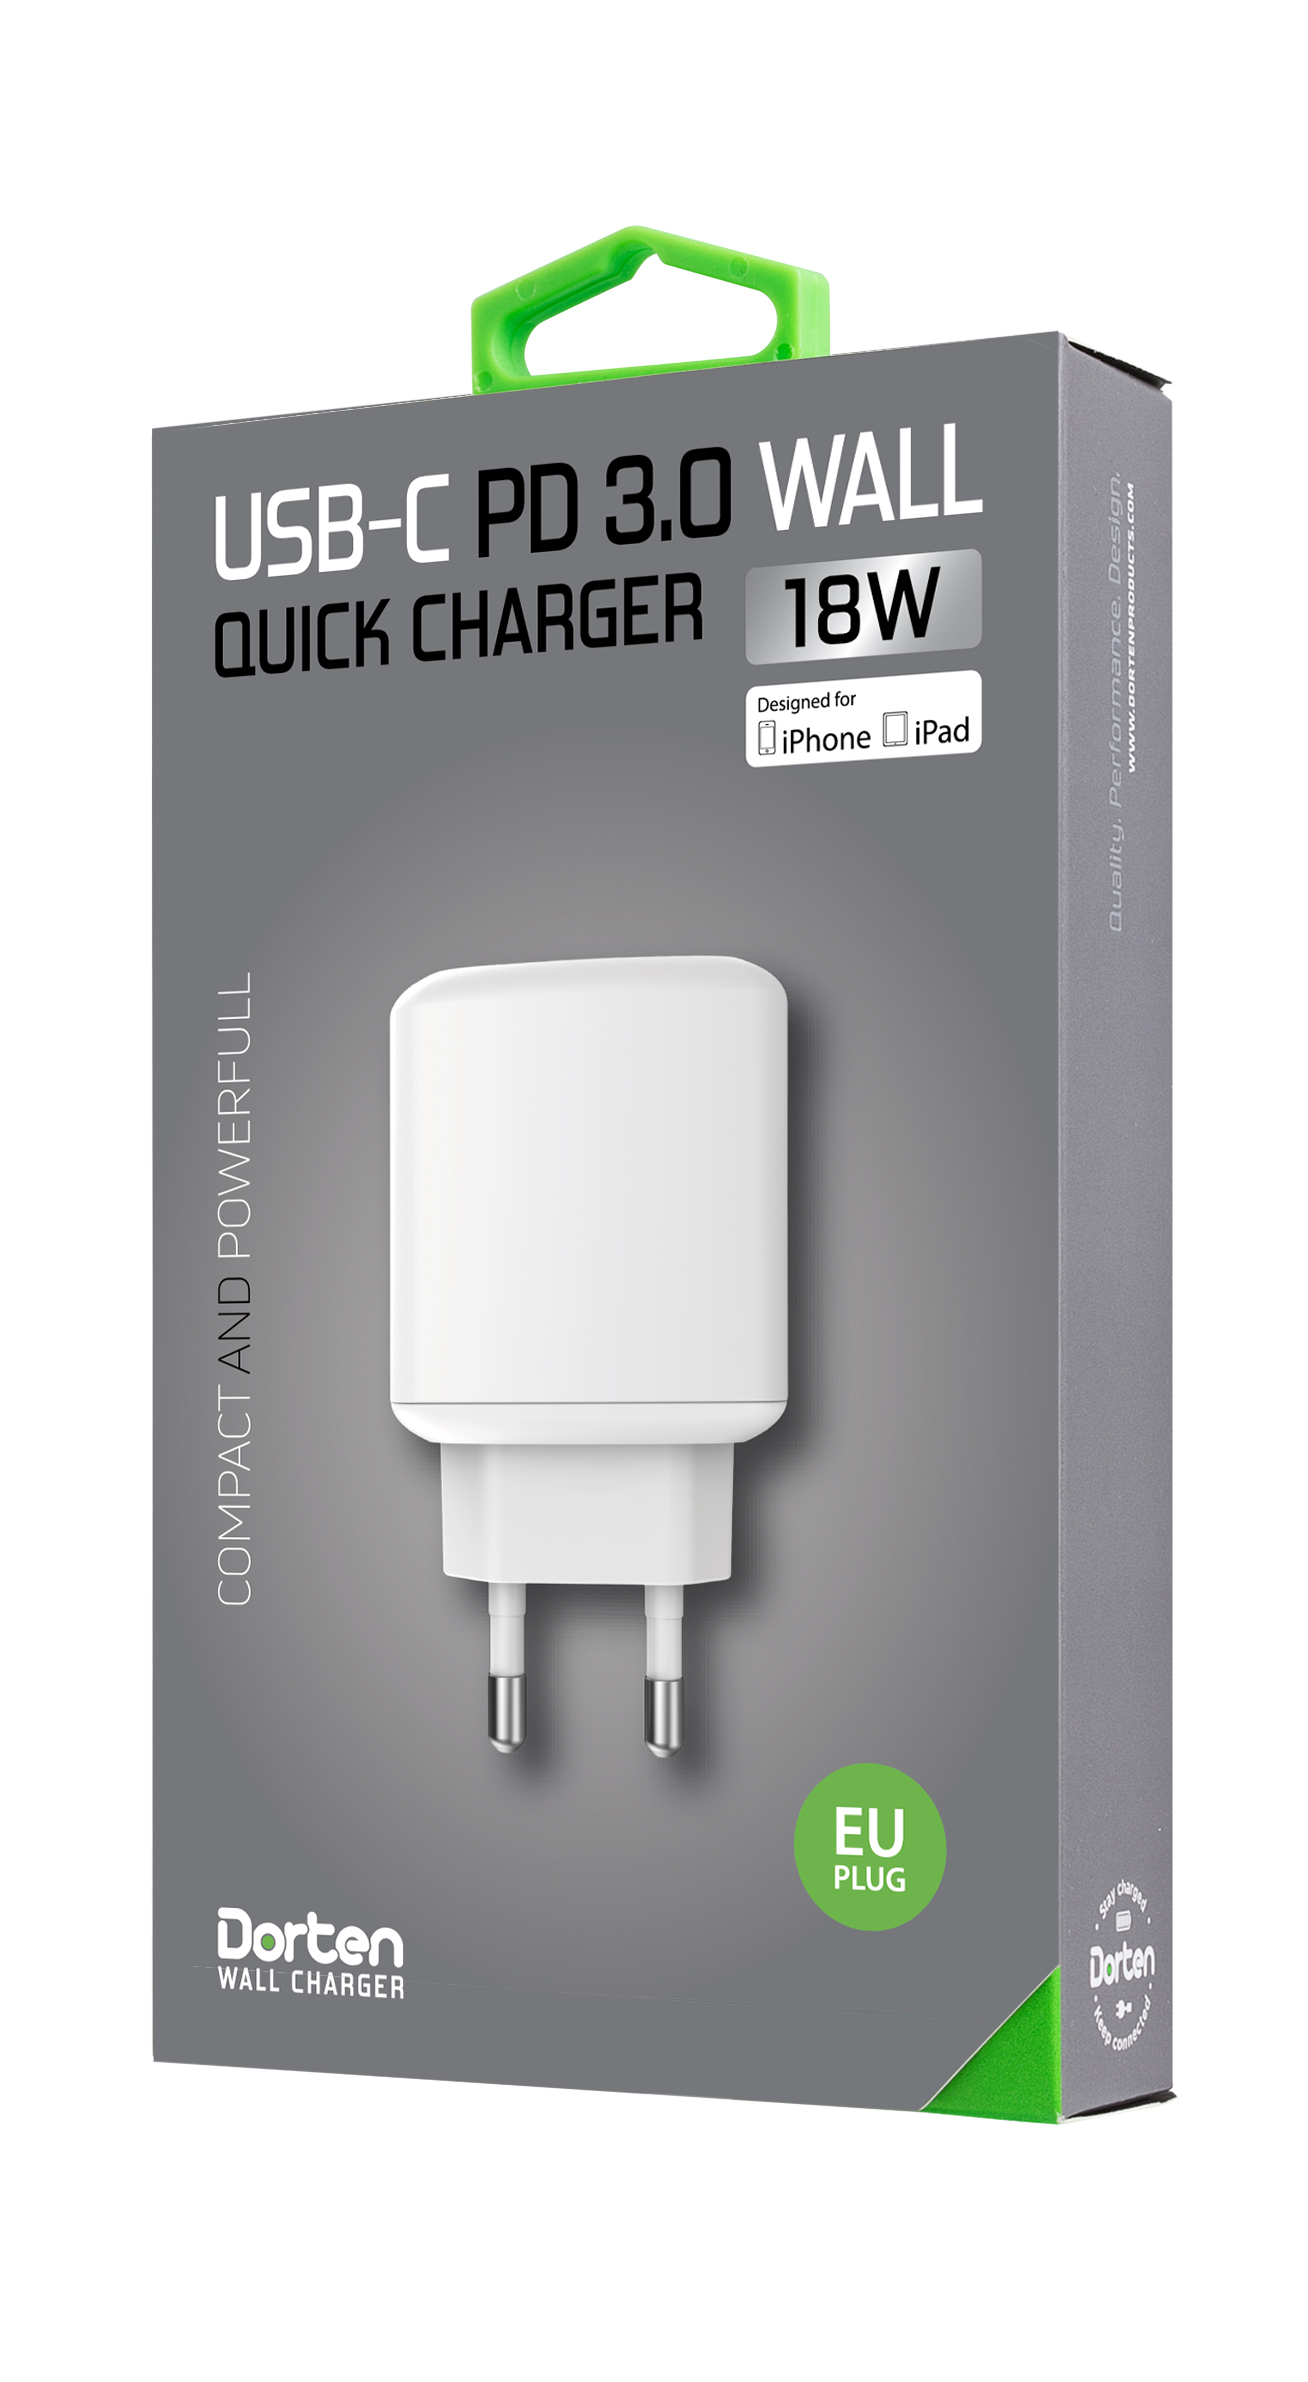 Зарядное устройство DORTEN Quick Charger USB-C PD3.0 18W, белый ugreen 5v 2 1a usb charger for iphone x 8 7 ipad fast wall charger eu adapter for samsung s9 xiaomi mi8 phone charger model50459